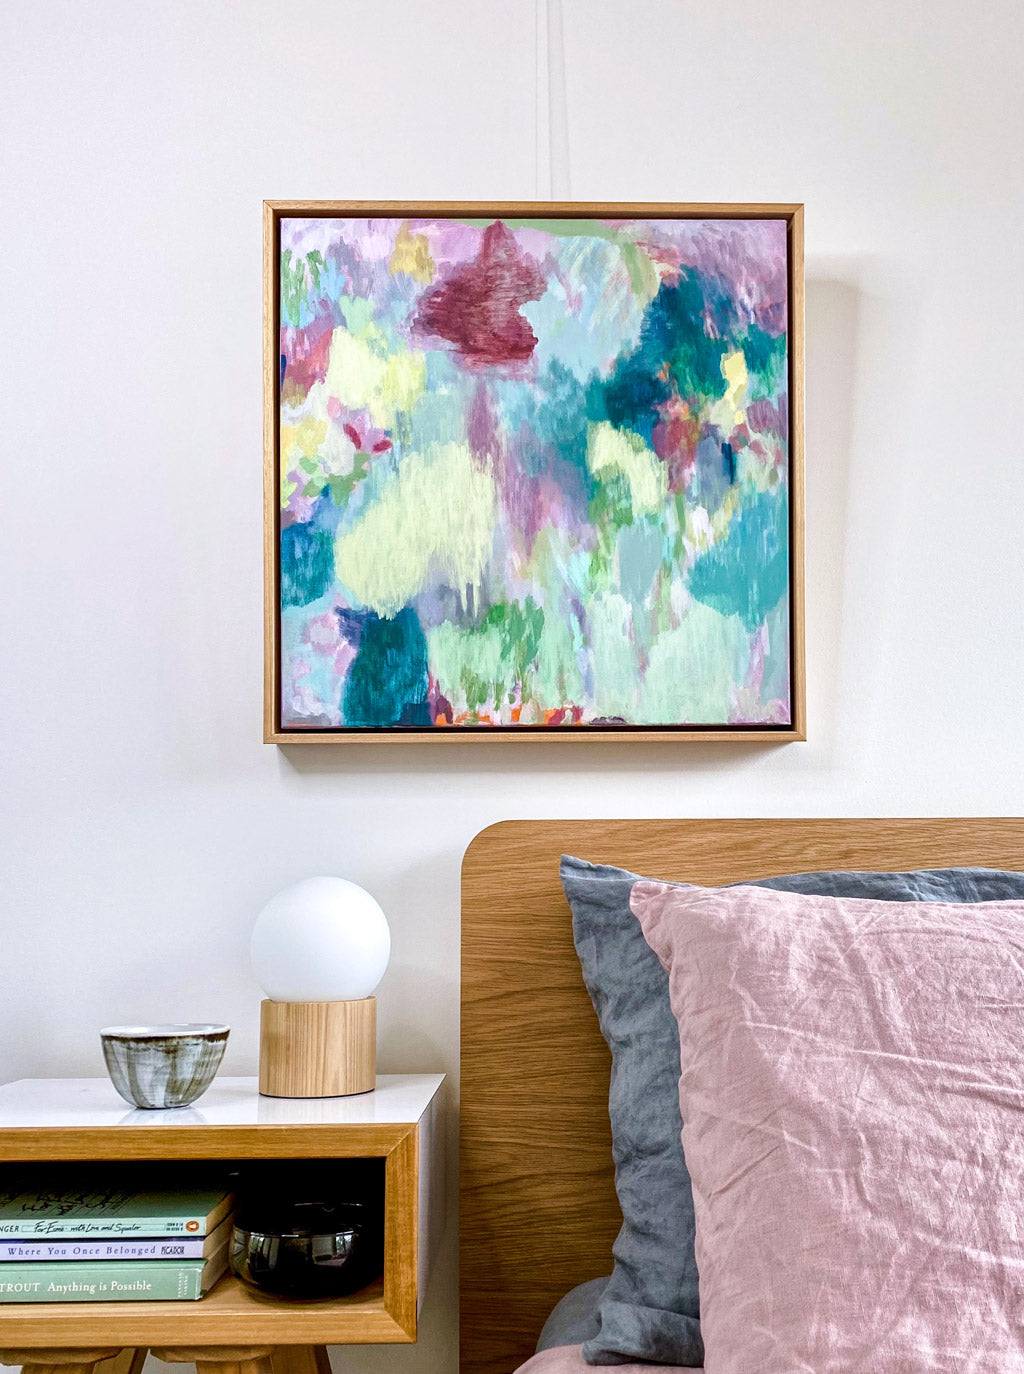 Original abstract landscape painting acrylic on canvas professionally framed hanging above the bed in situ available to purchase